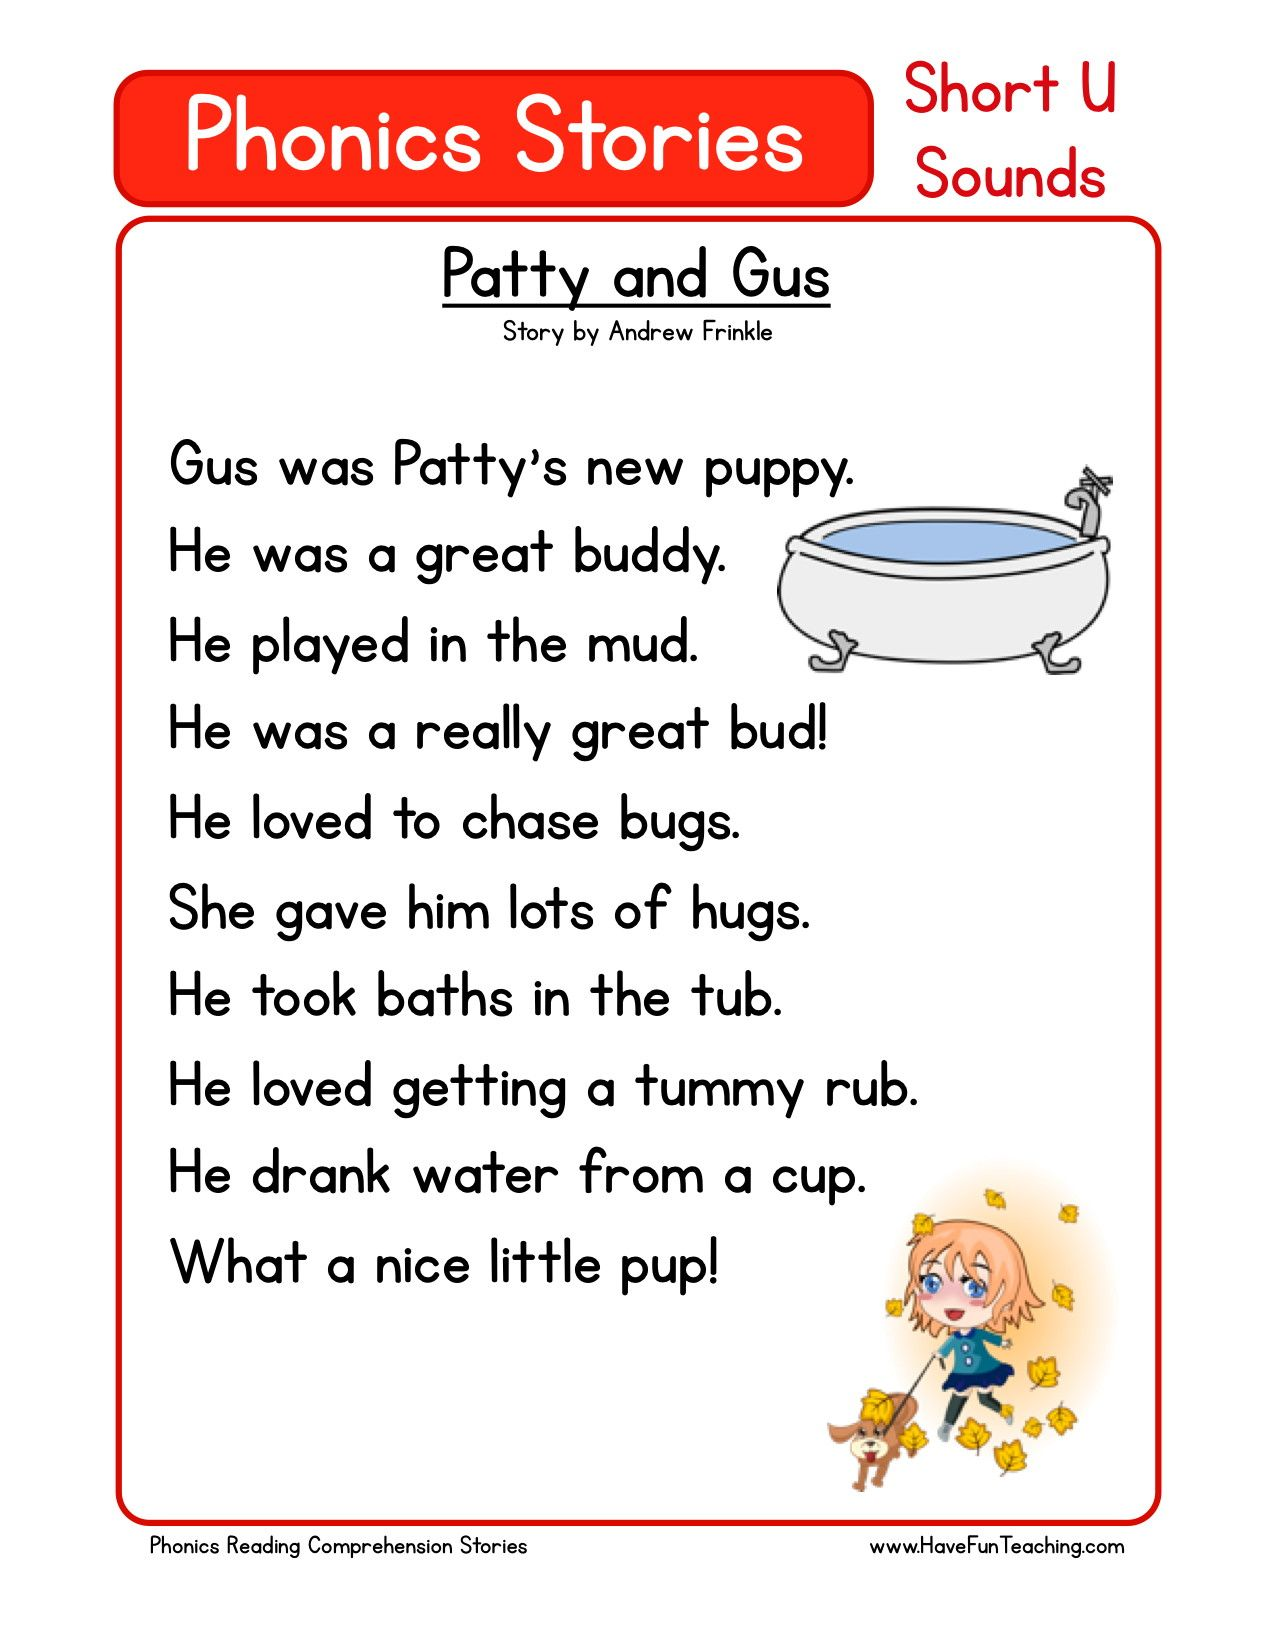 Reading Comprehension Worksheet Patty And Gus Reading Comprehension Worksheets Phonics Reading Phonics Short story reading comprehension